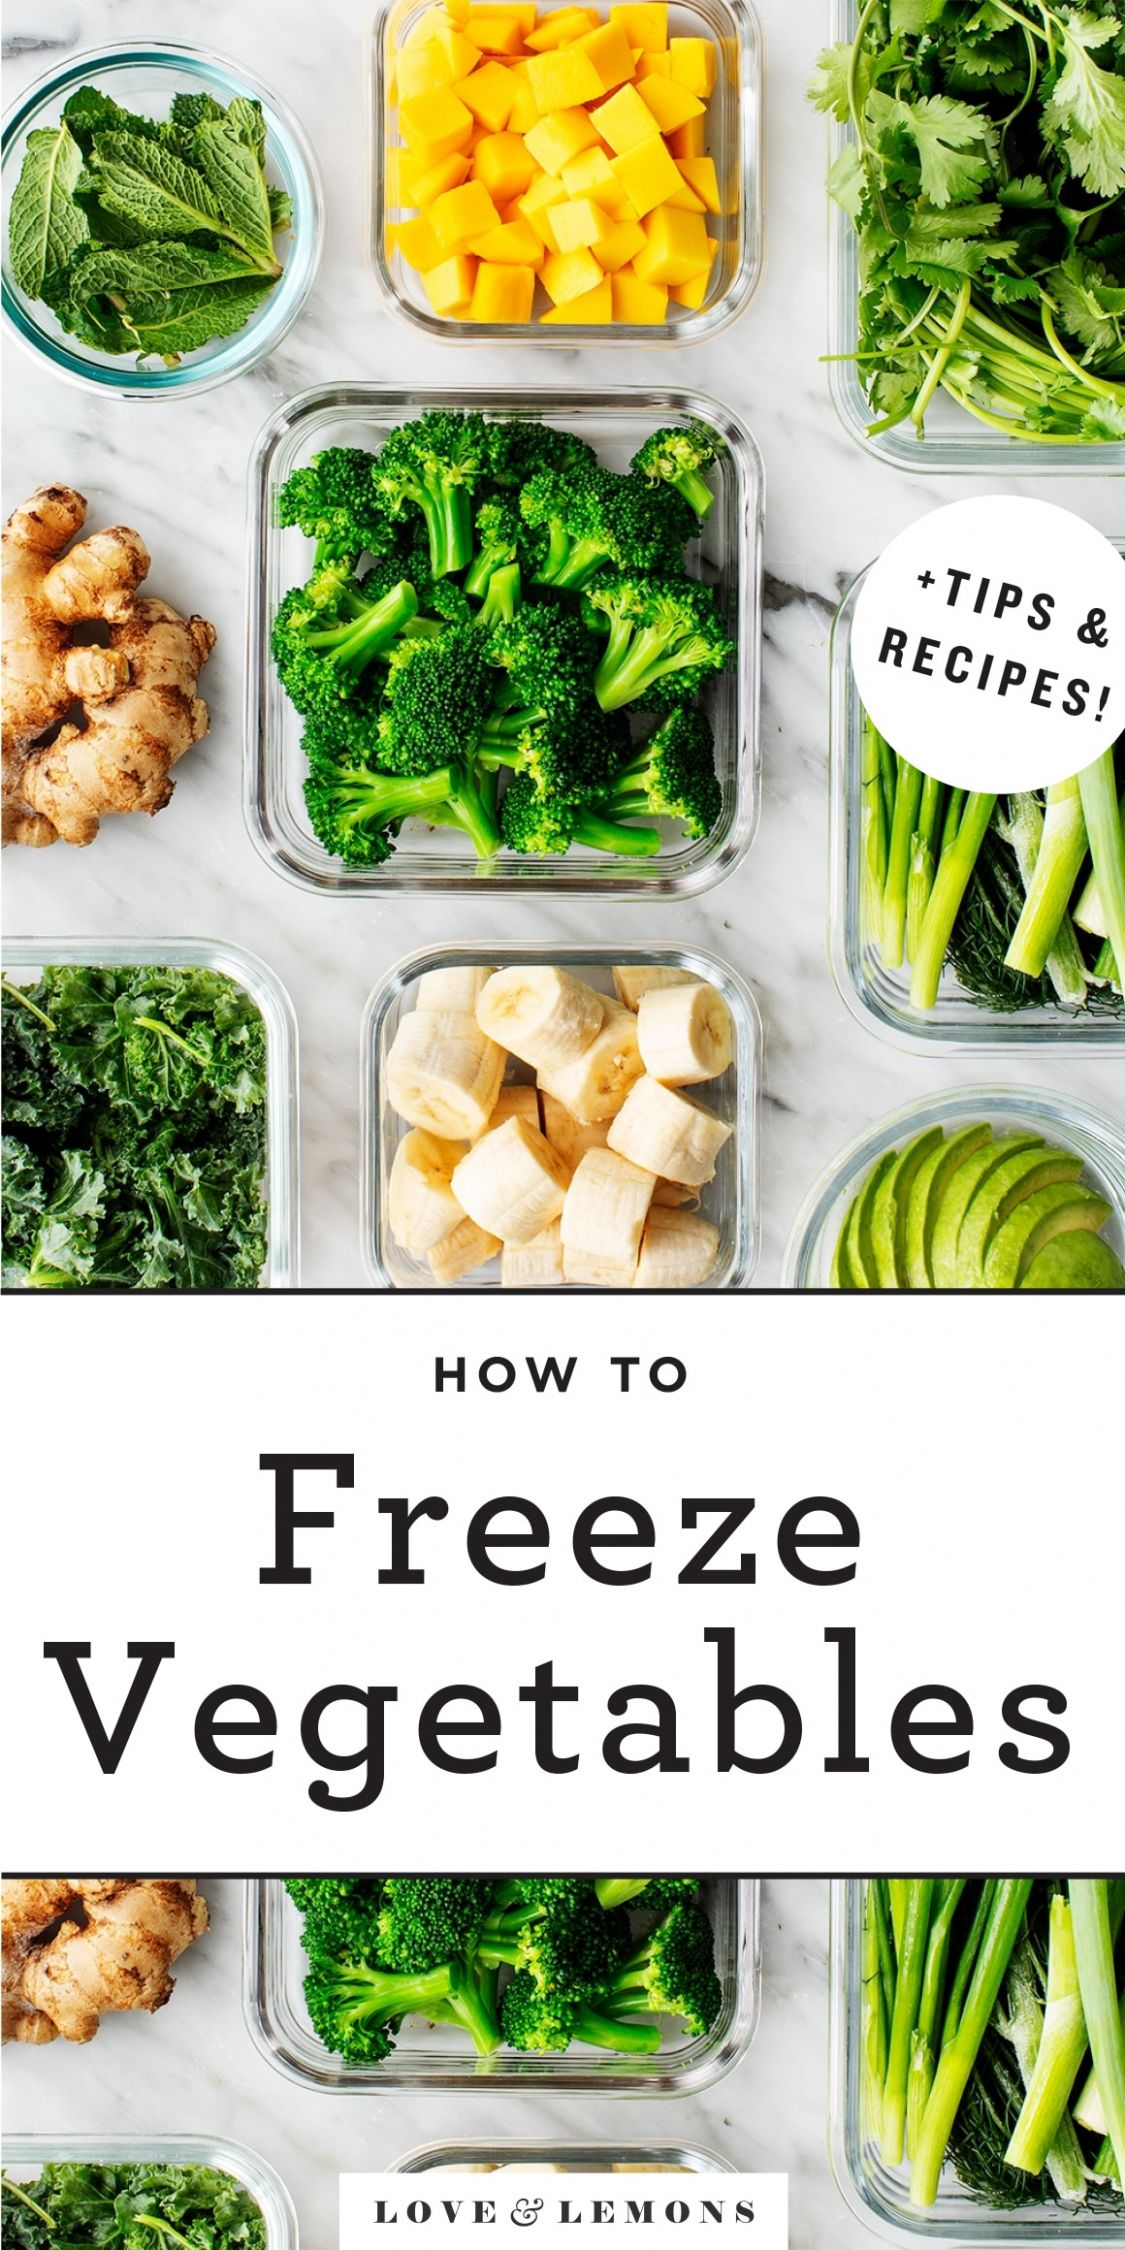 Produce Prep Part 11: Freezing Vegetables - Love and Lemons - Vegetable Recipes To Freeze